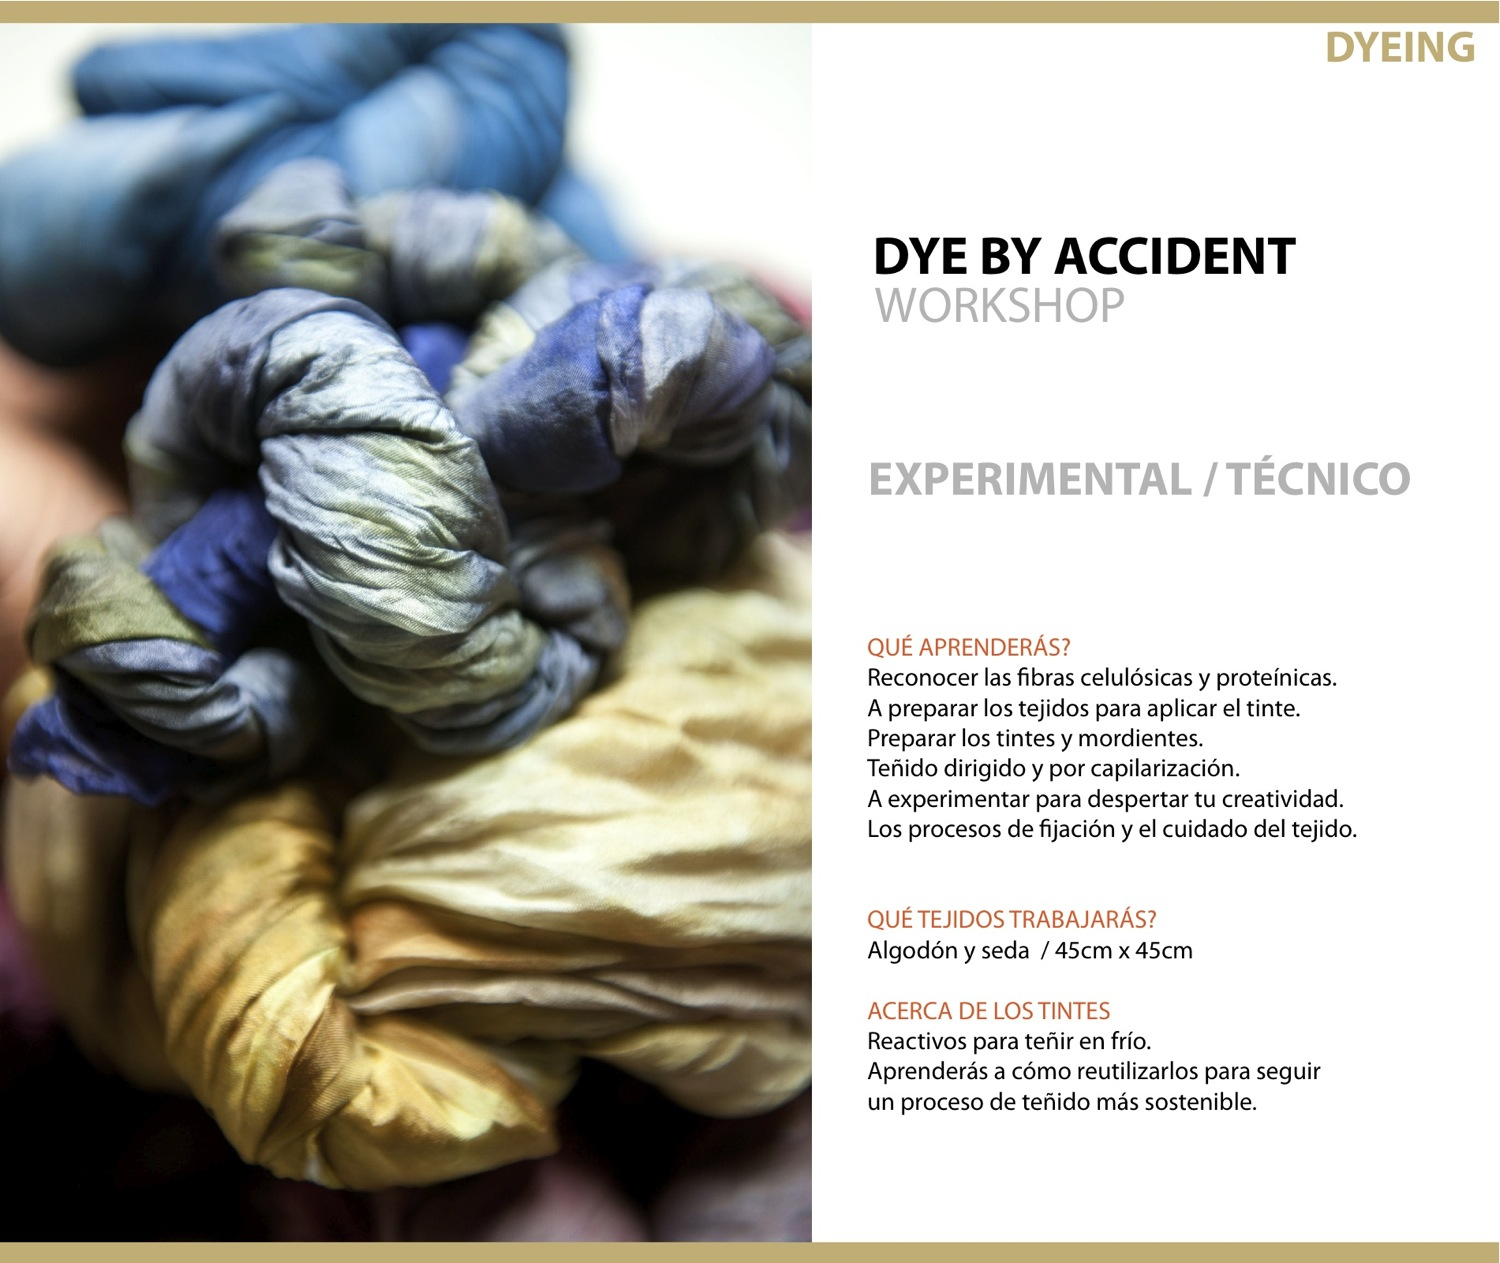 DYE BY ACCIDENT